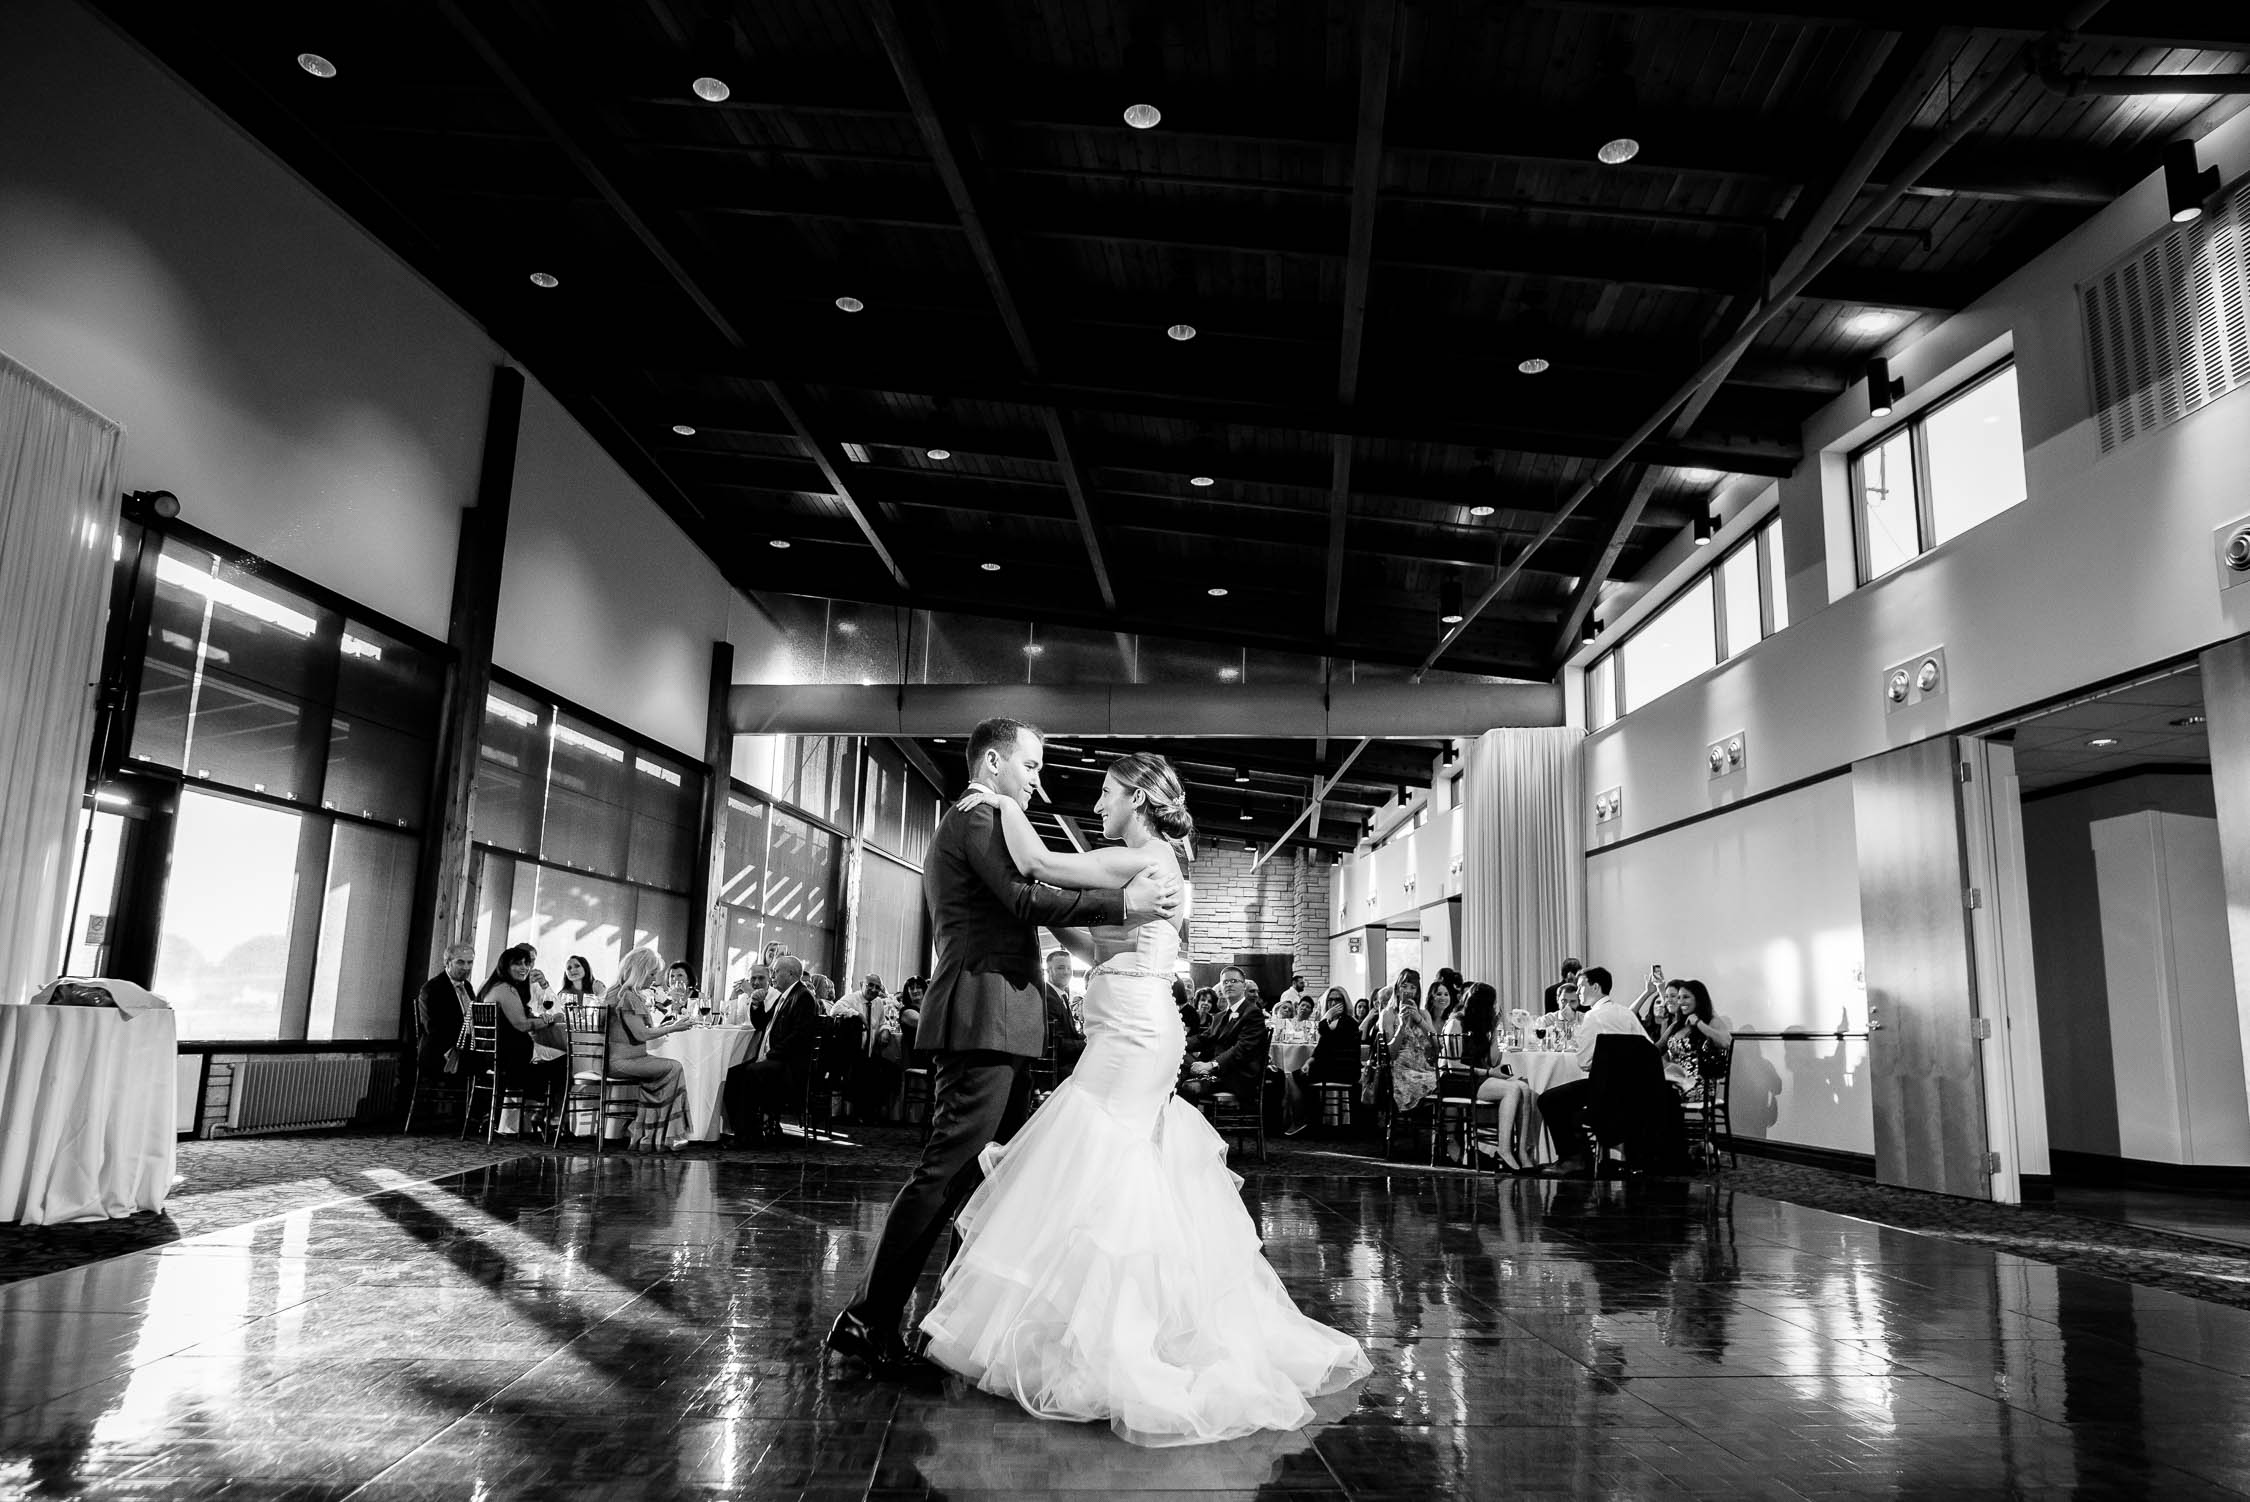 First dance during a wedding at Independence Grove in Libertyville.